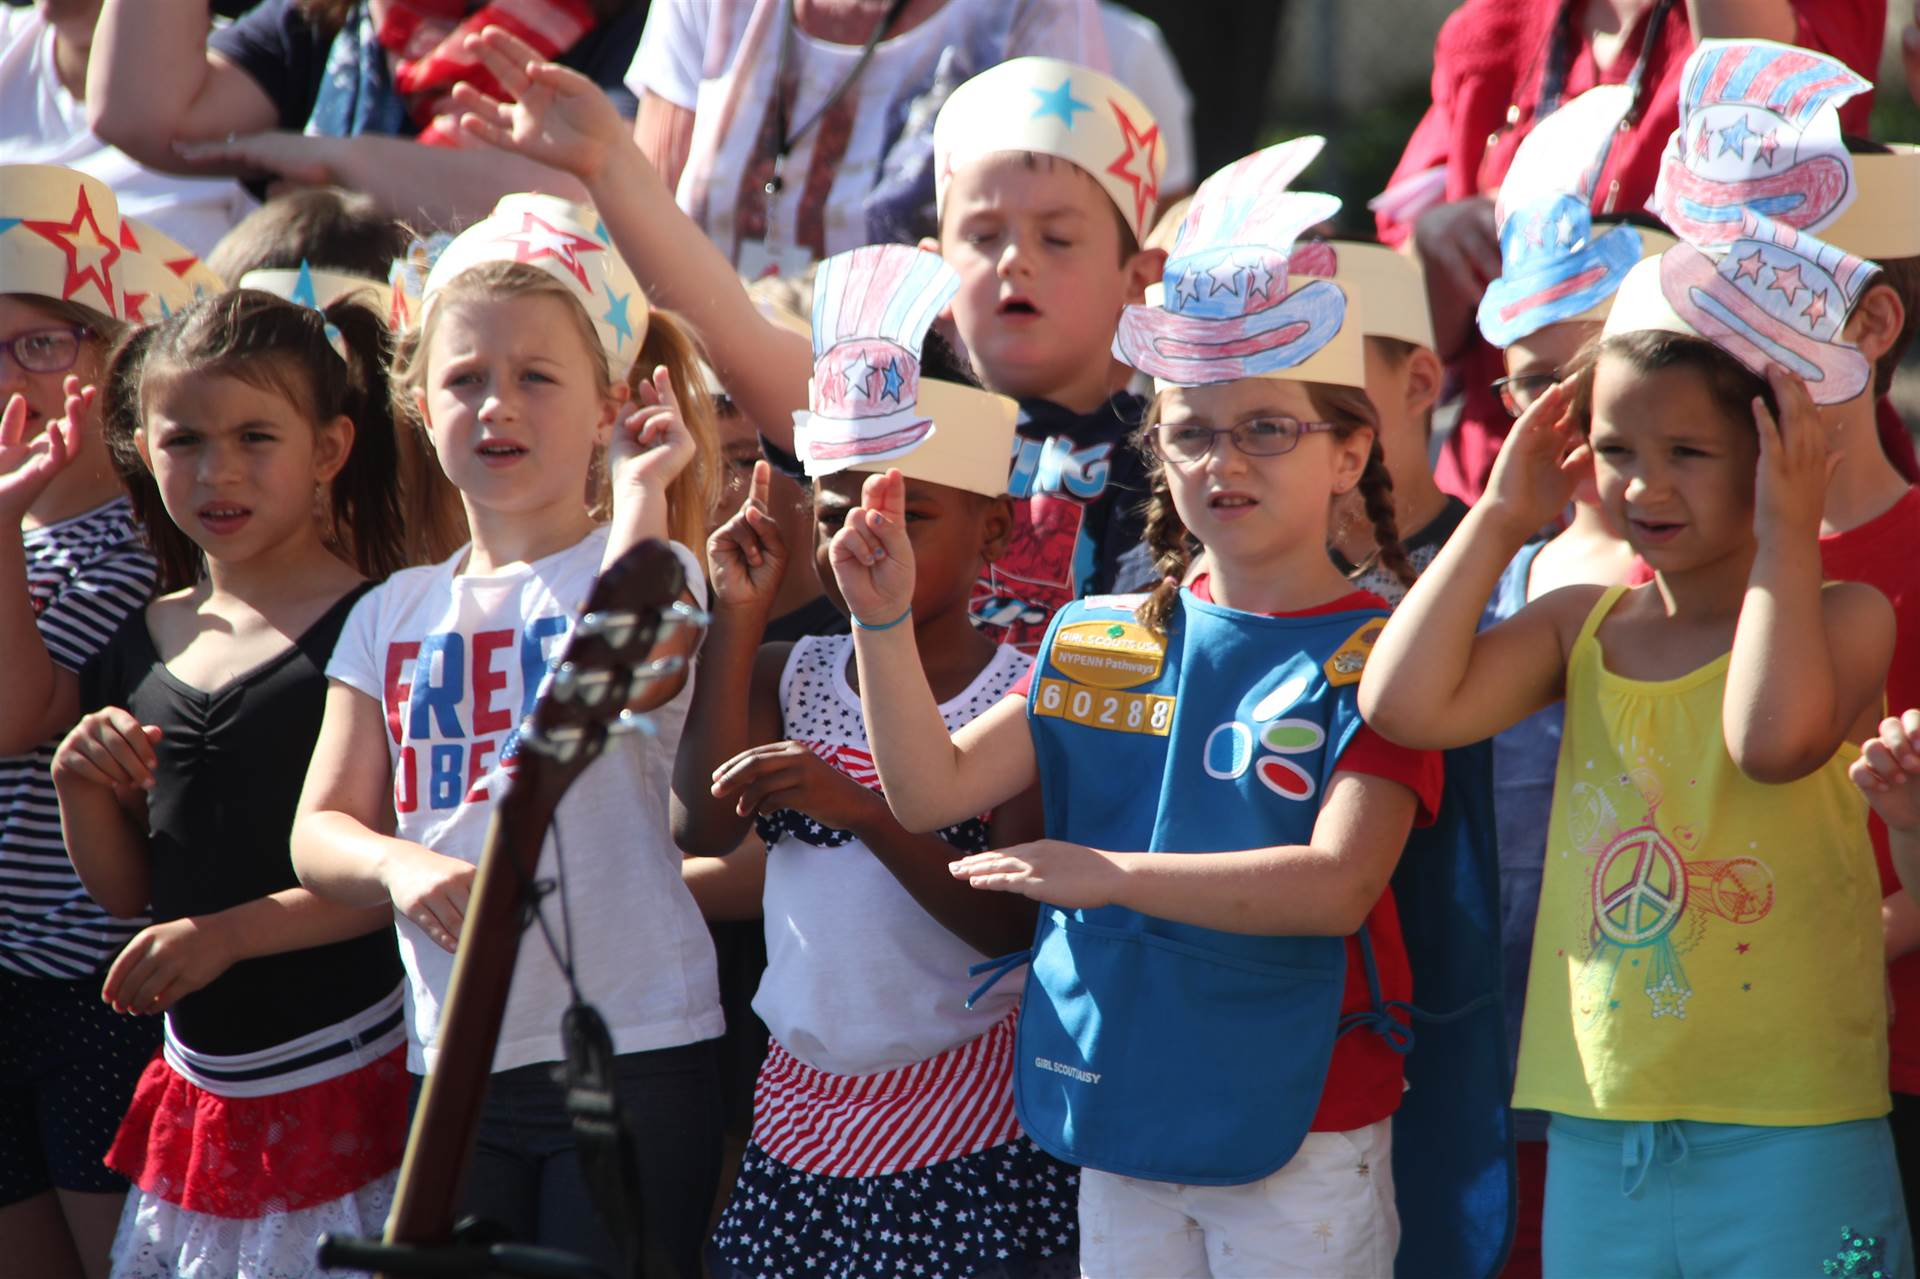 port dickinson students do sign language and sing patriotic song